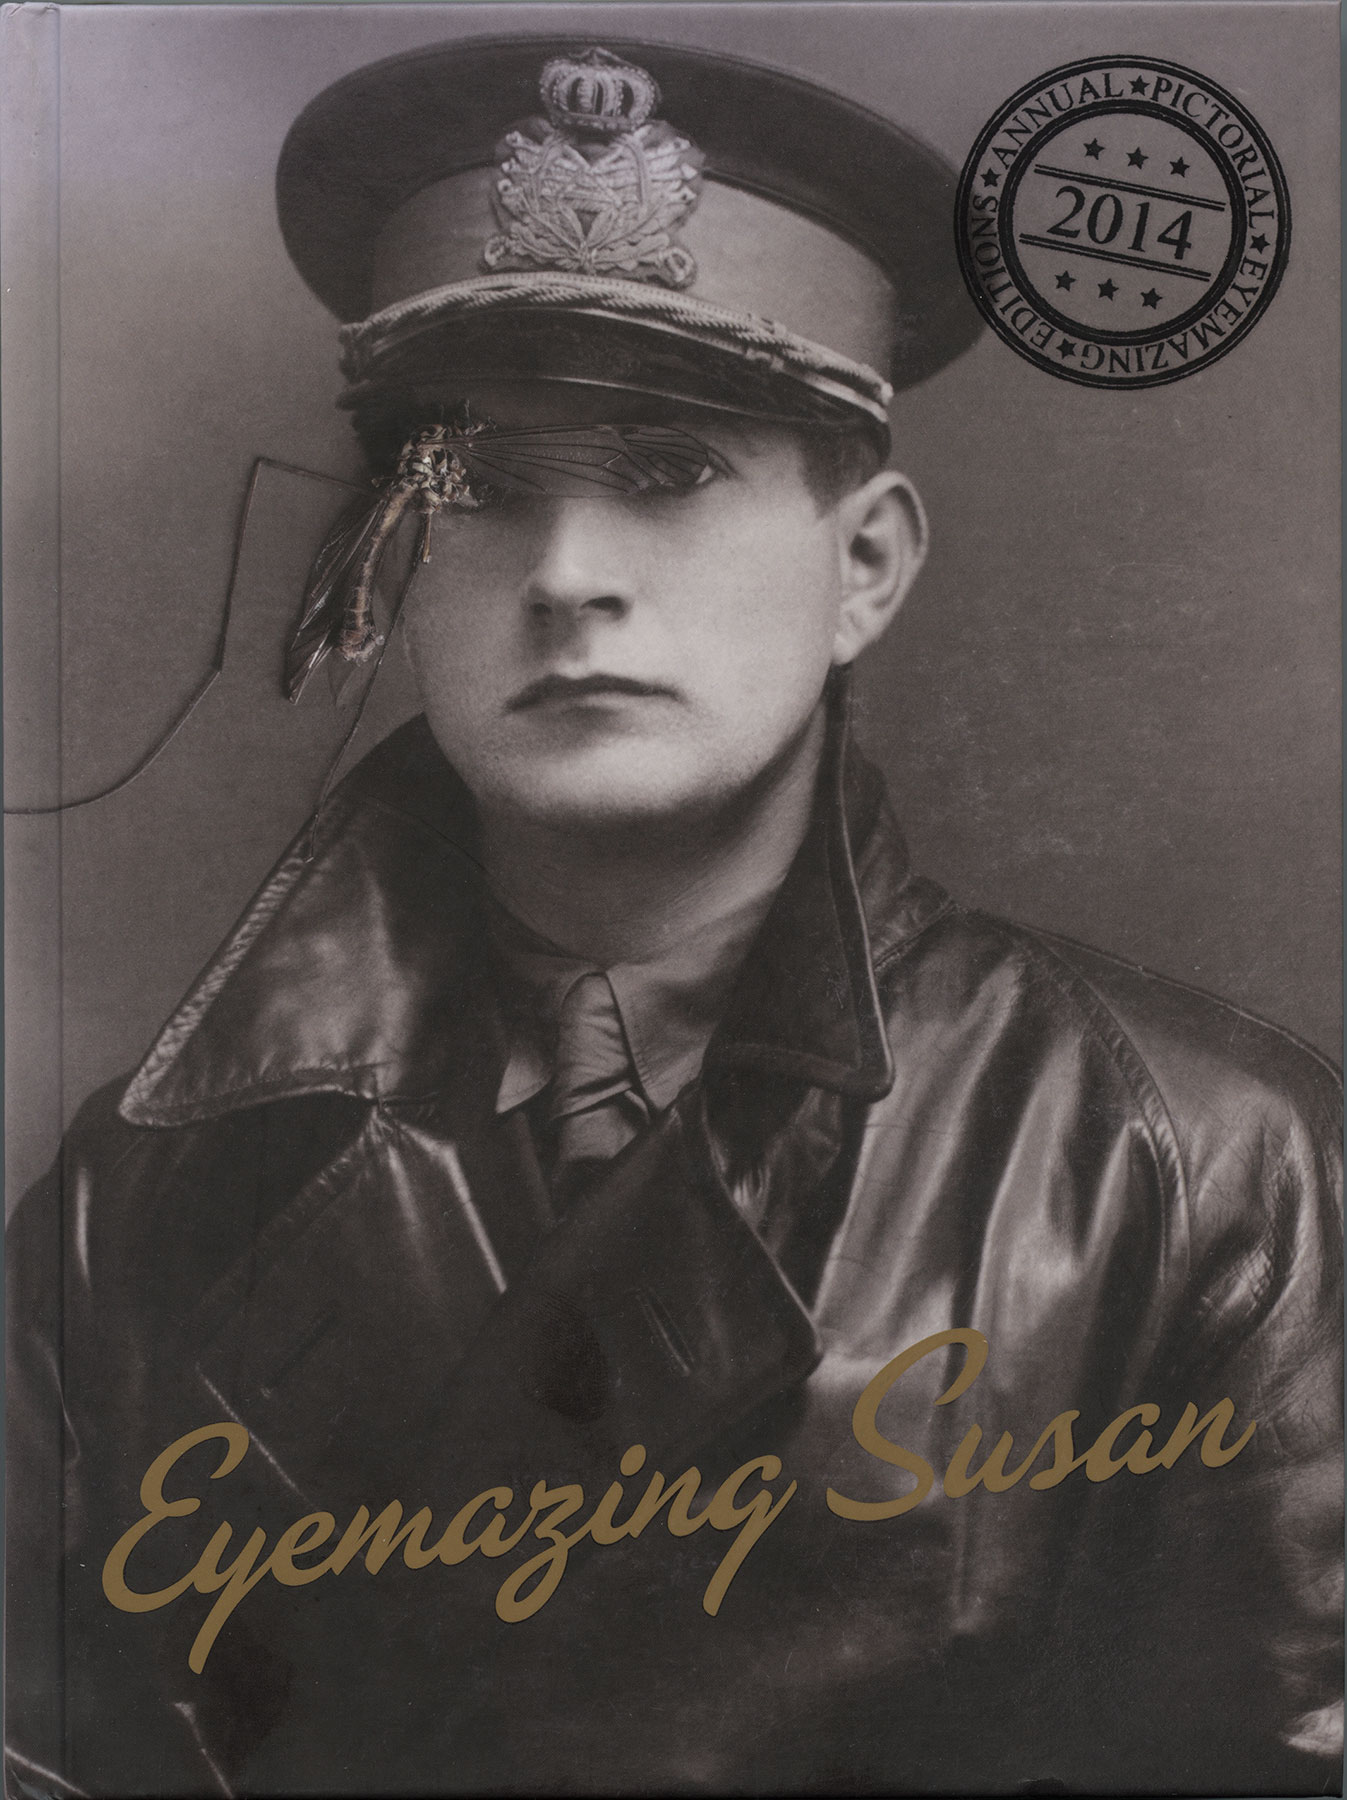 Eyemazing Annual Pictorial 2014 Curated by Susan Zadeh Published by Eyemazing Editions Amsterdam, Netherlands